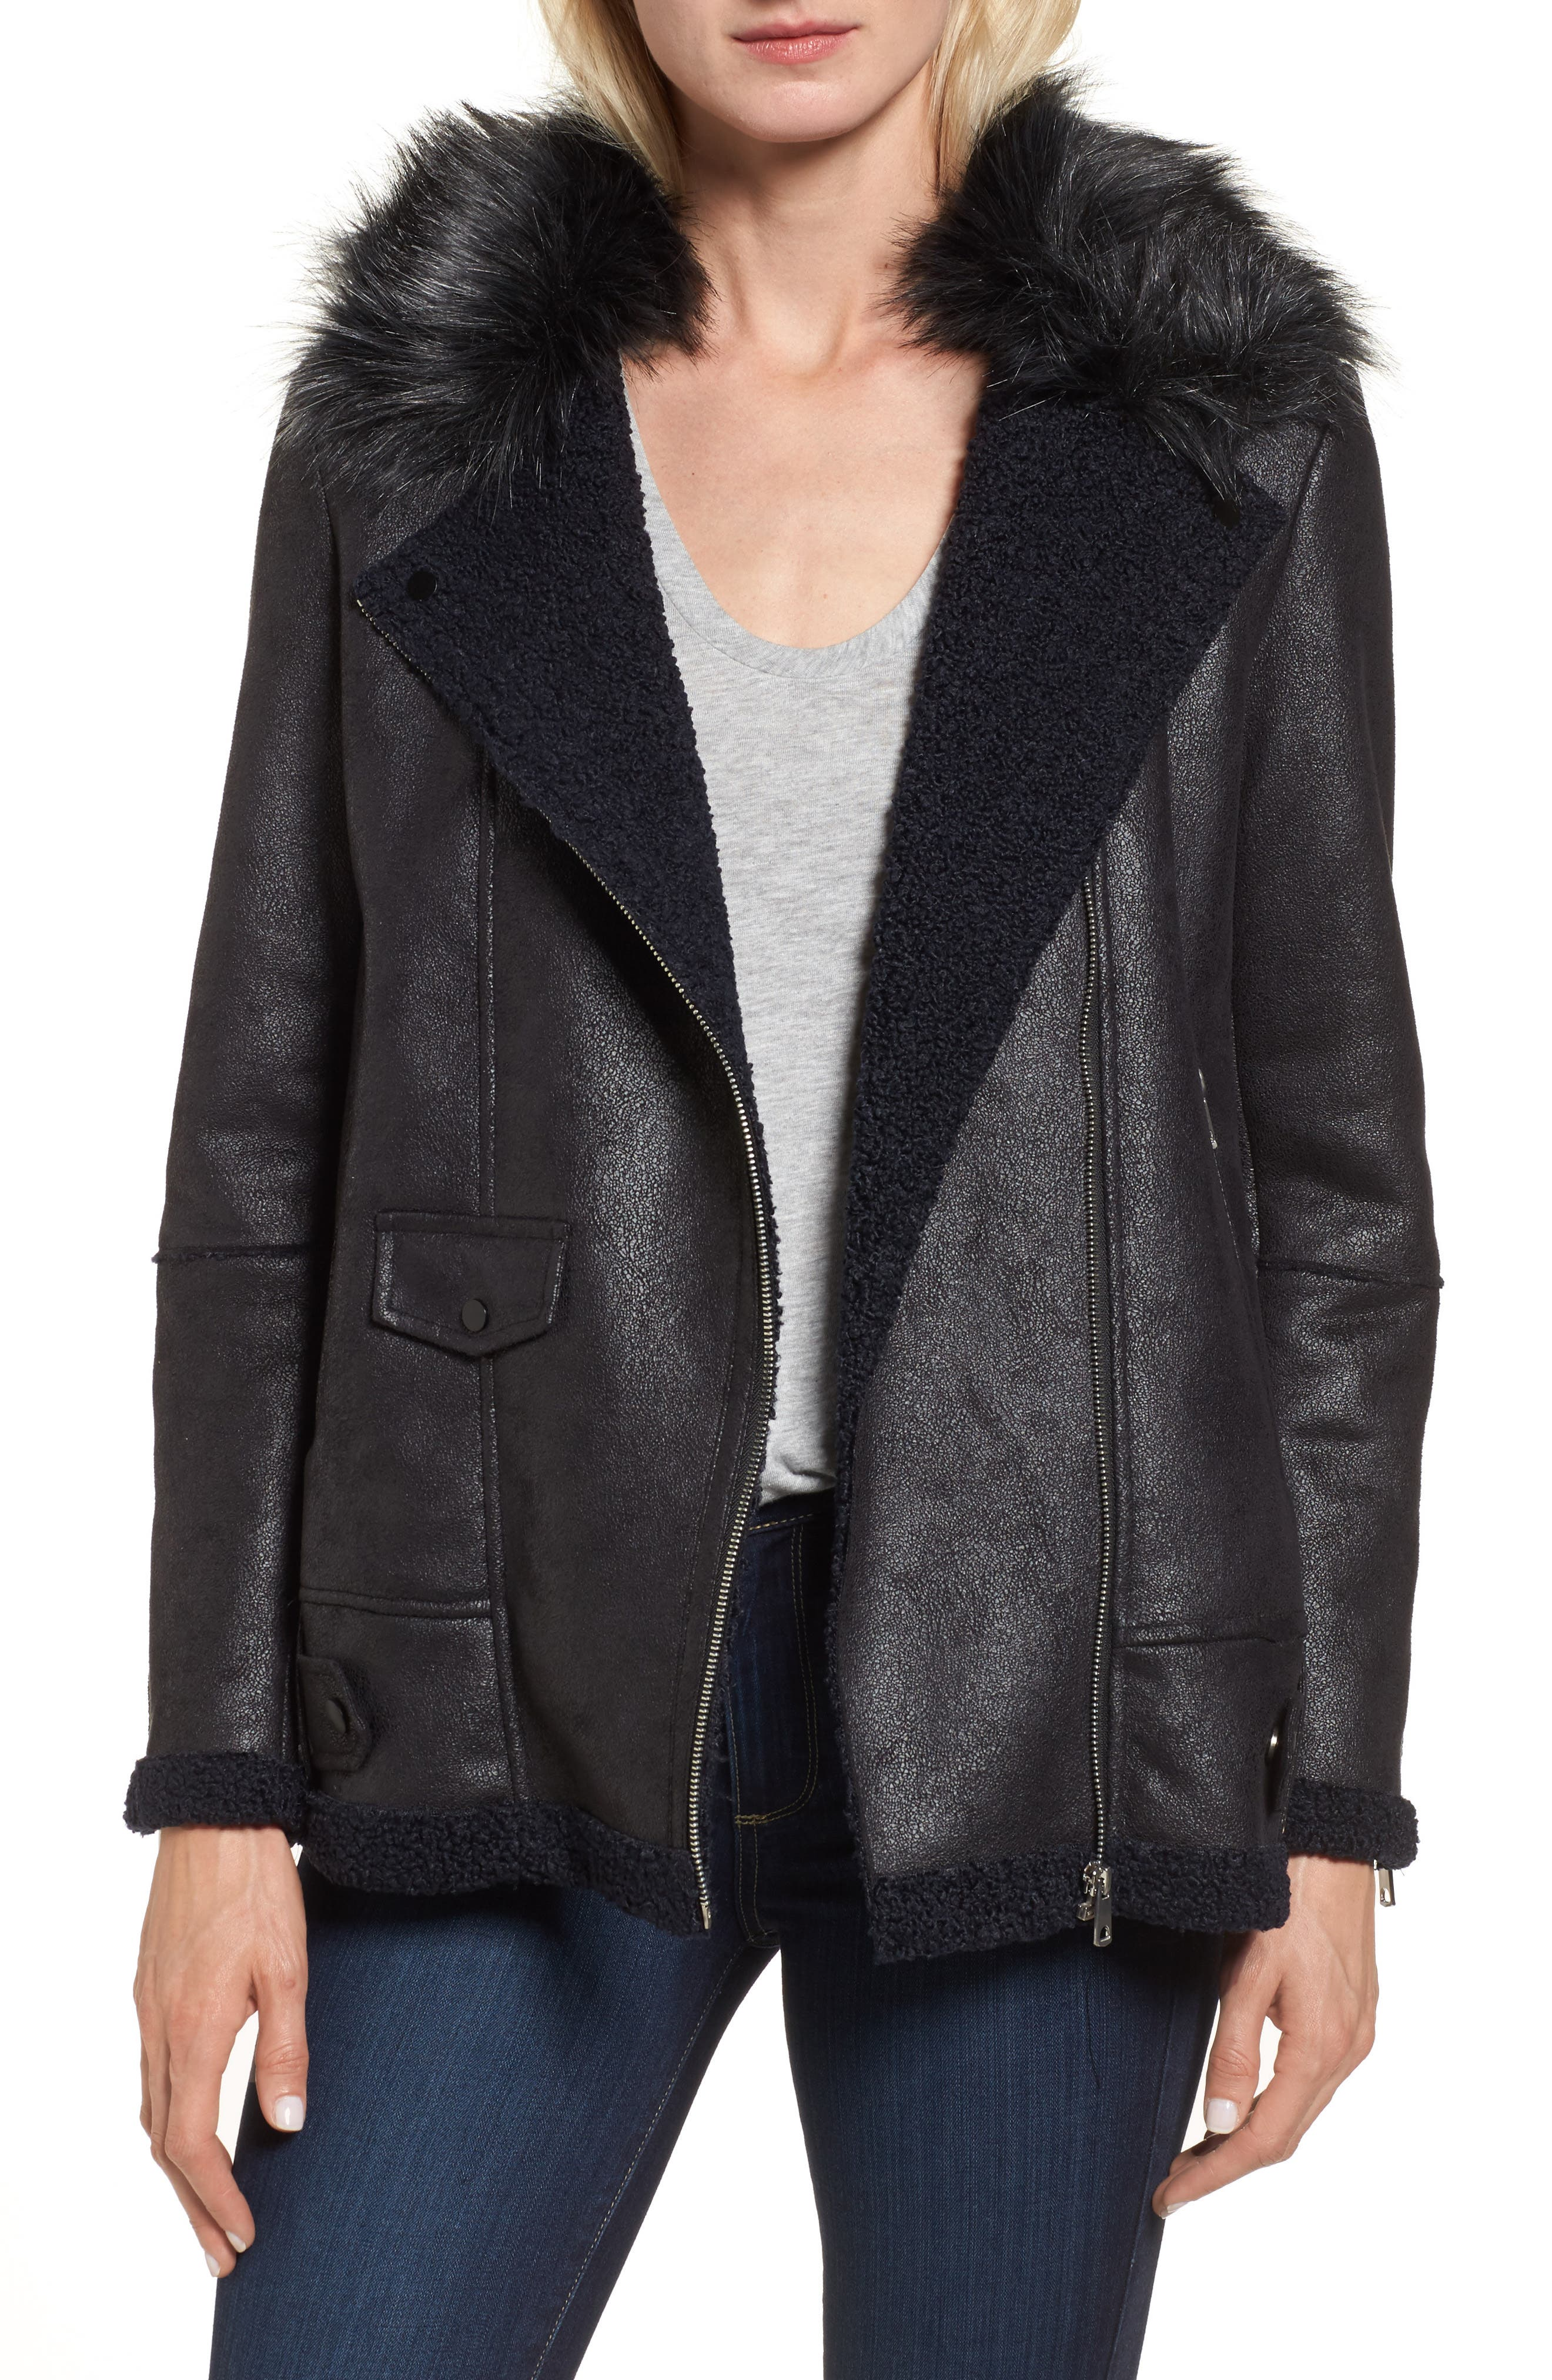 Main Image - NVLT Faux Suede Moto Jacket with Faux Fur Collar